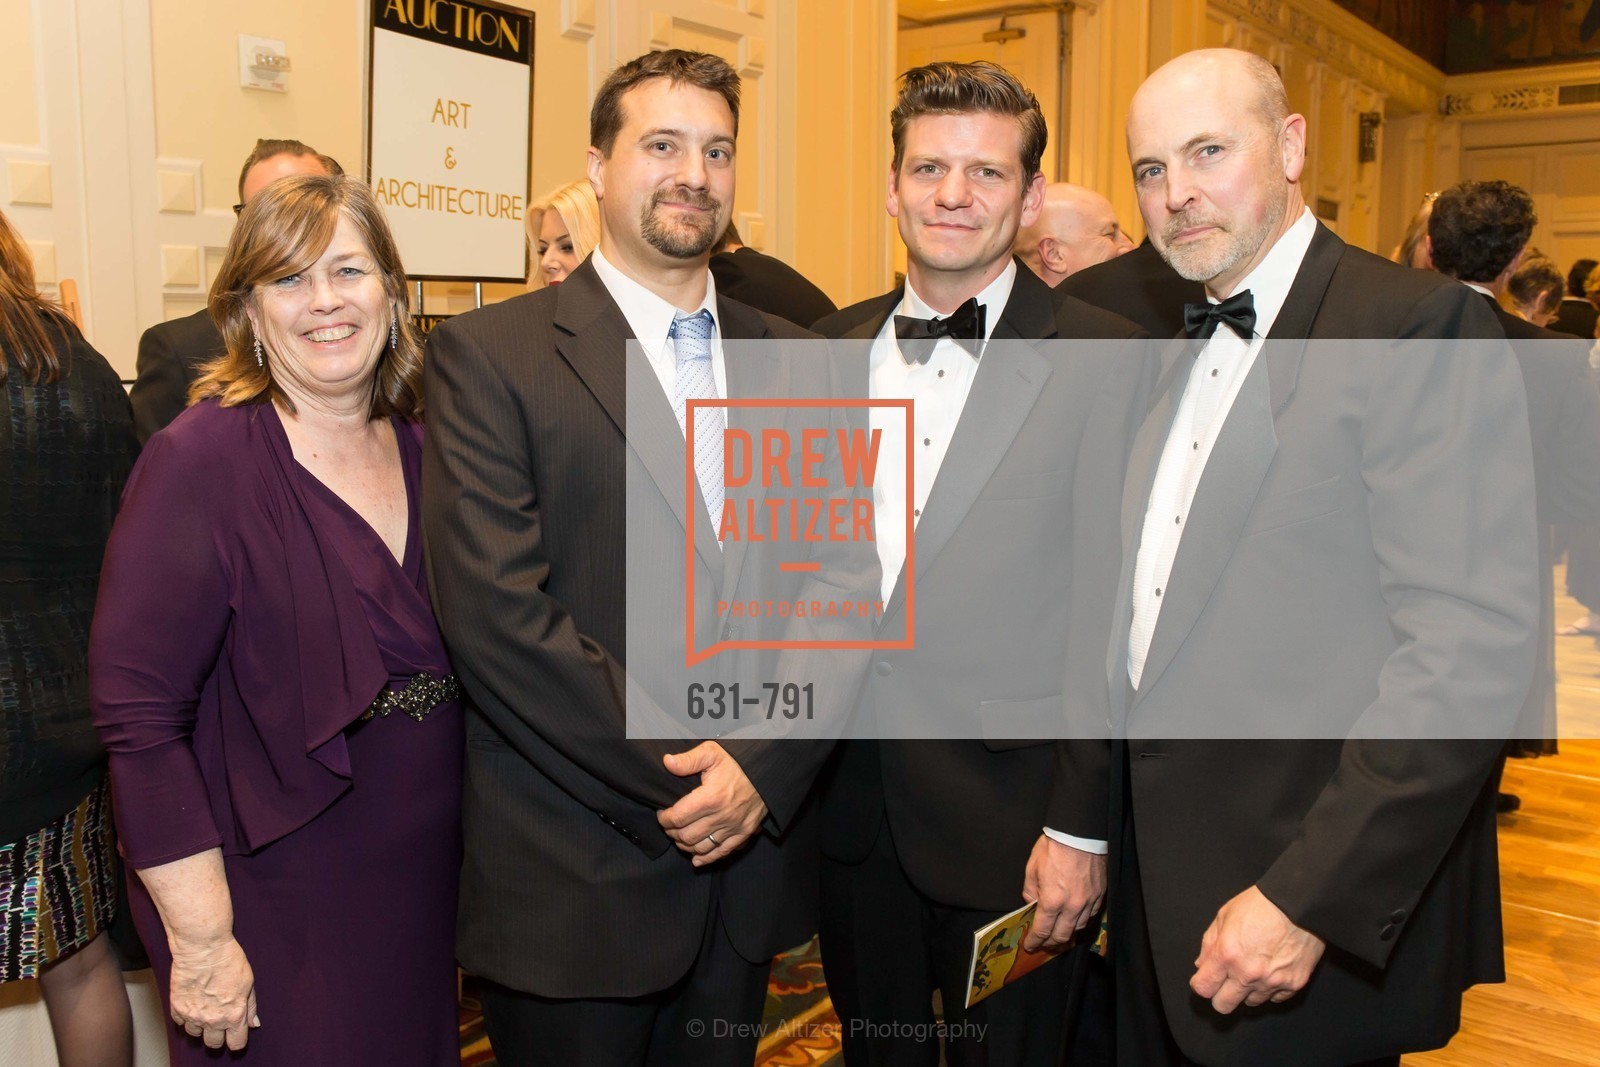 Carolyn Squeri, John Adams, Justin Greving, Chandler McCoy, SAN FRANCISCO HERITAGE Soiree 2015, US, April 19th, 2015,Drew Altizer, Drew Altizer Photography, full-service agency, private events, San Francisco photographer, photographer california